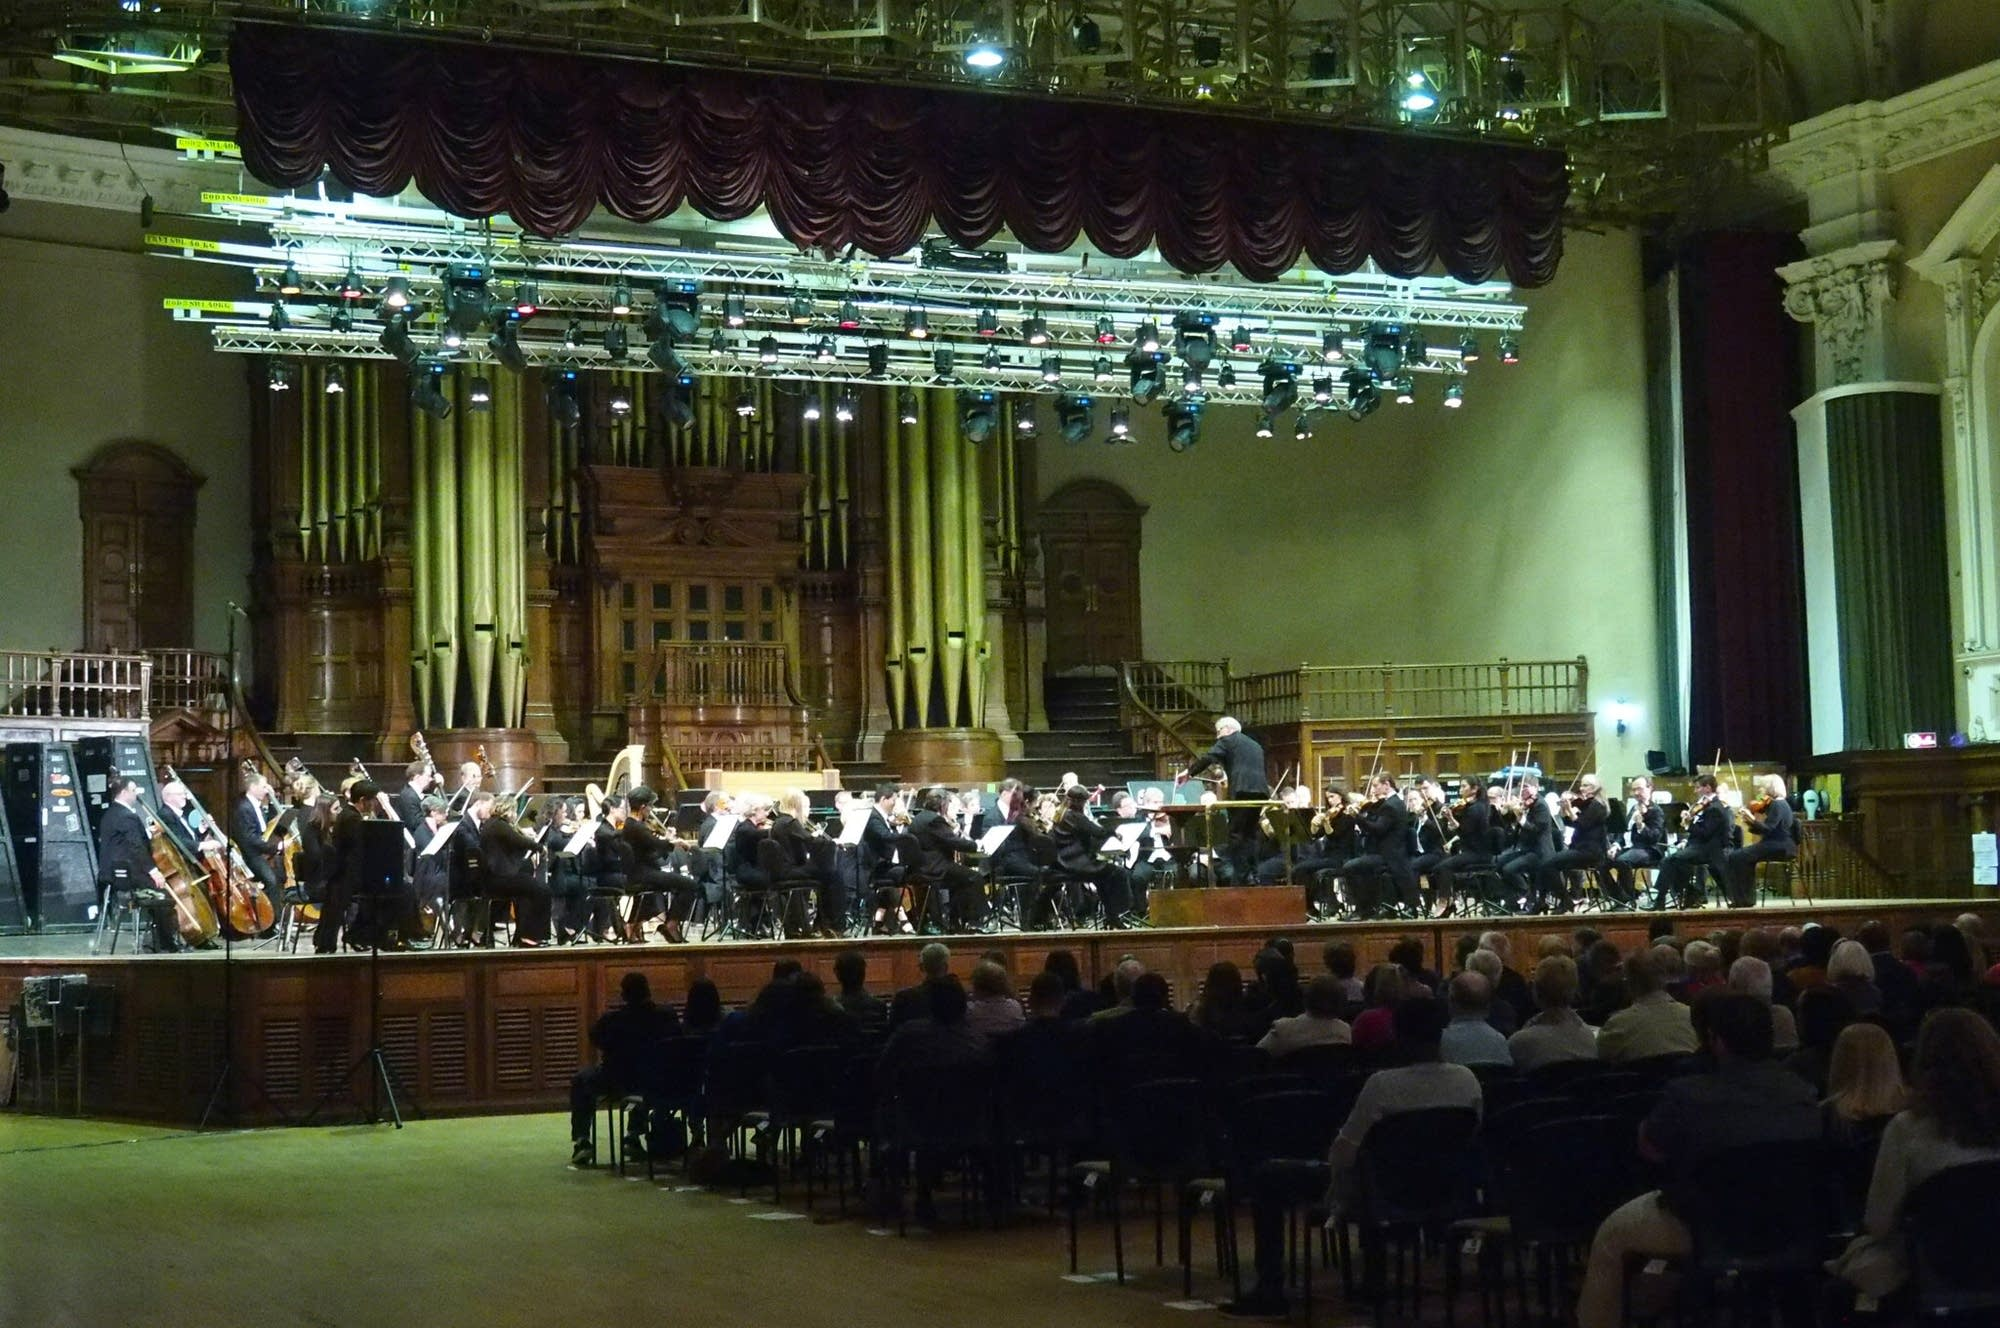 The Minnesota Orchestra on stage at the Durban City Hall.